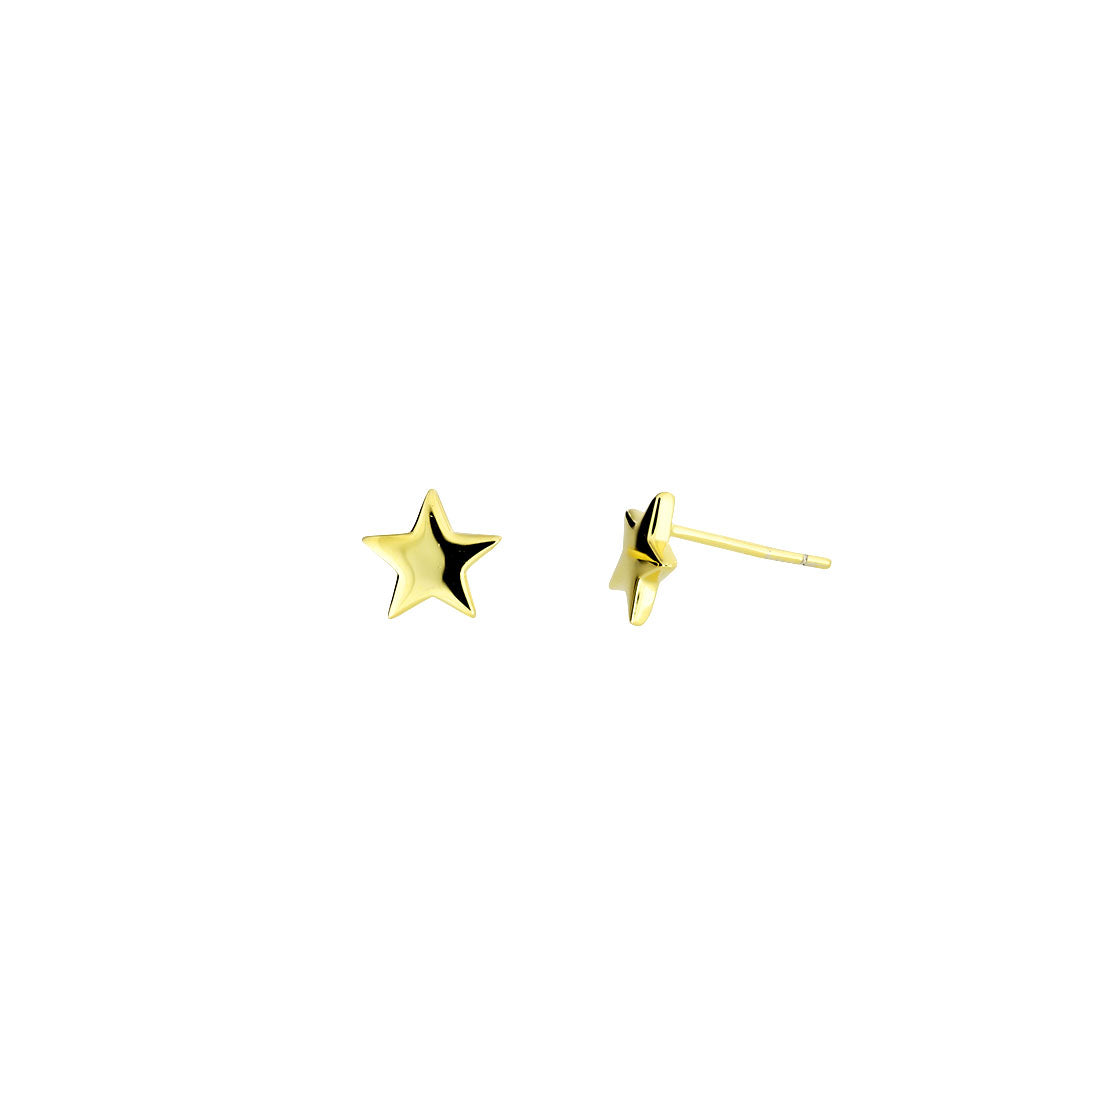 Little Star Stud Earrings - Gold Vermeil